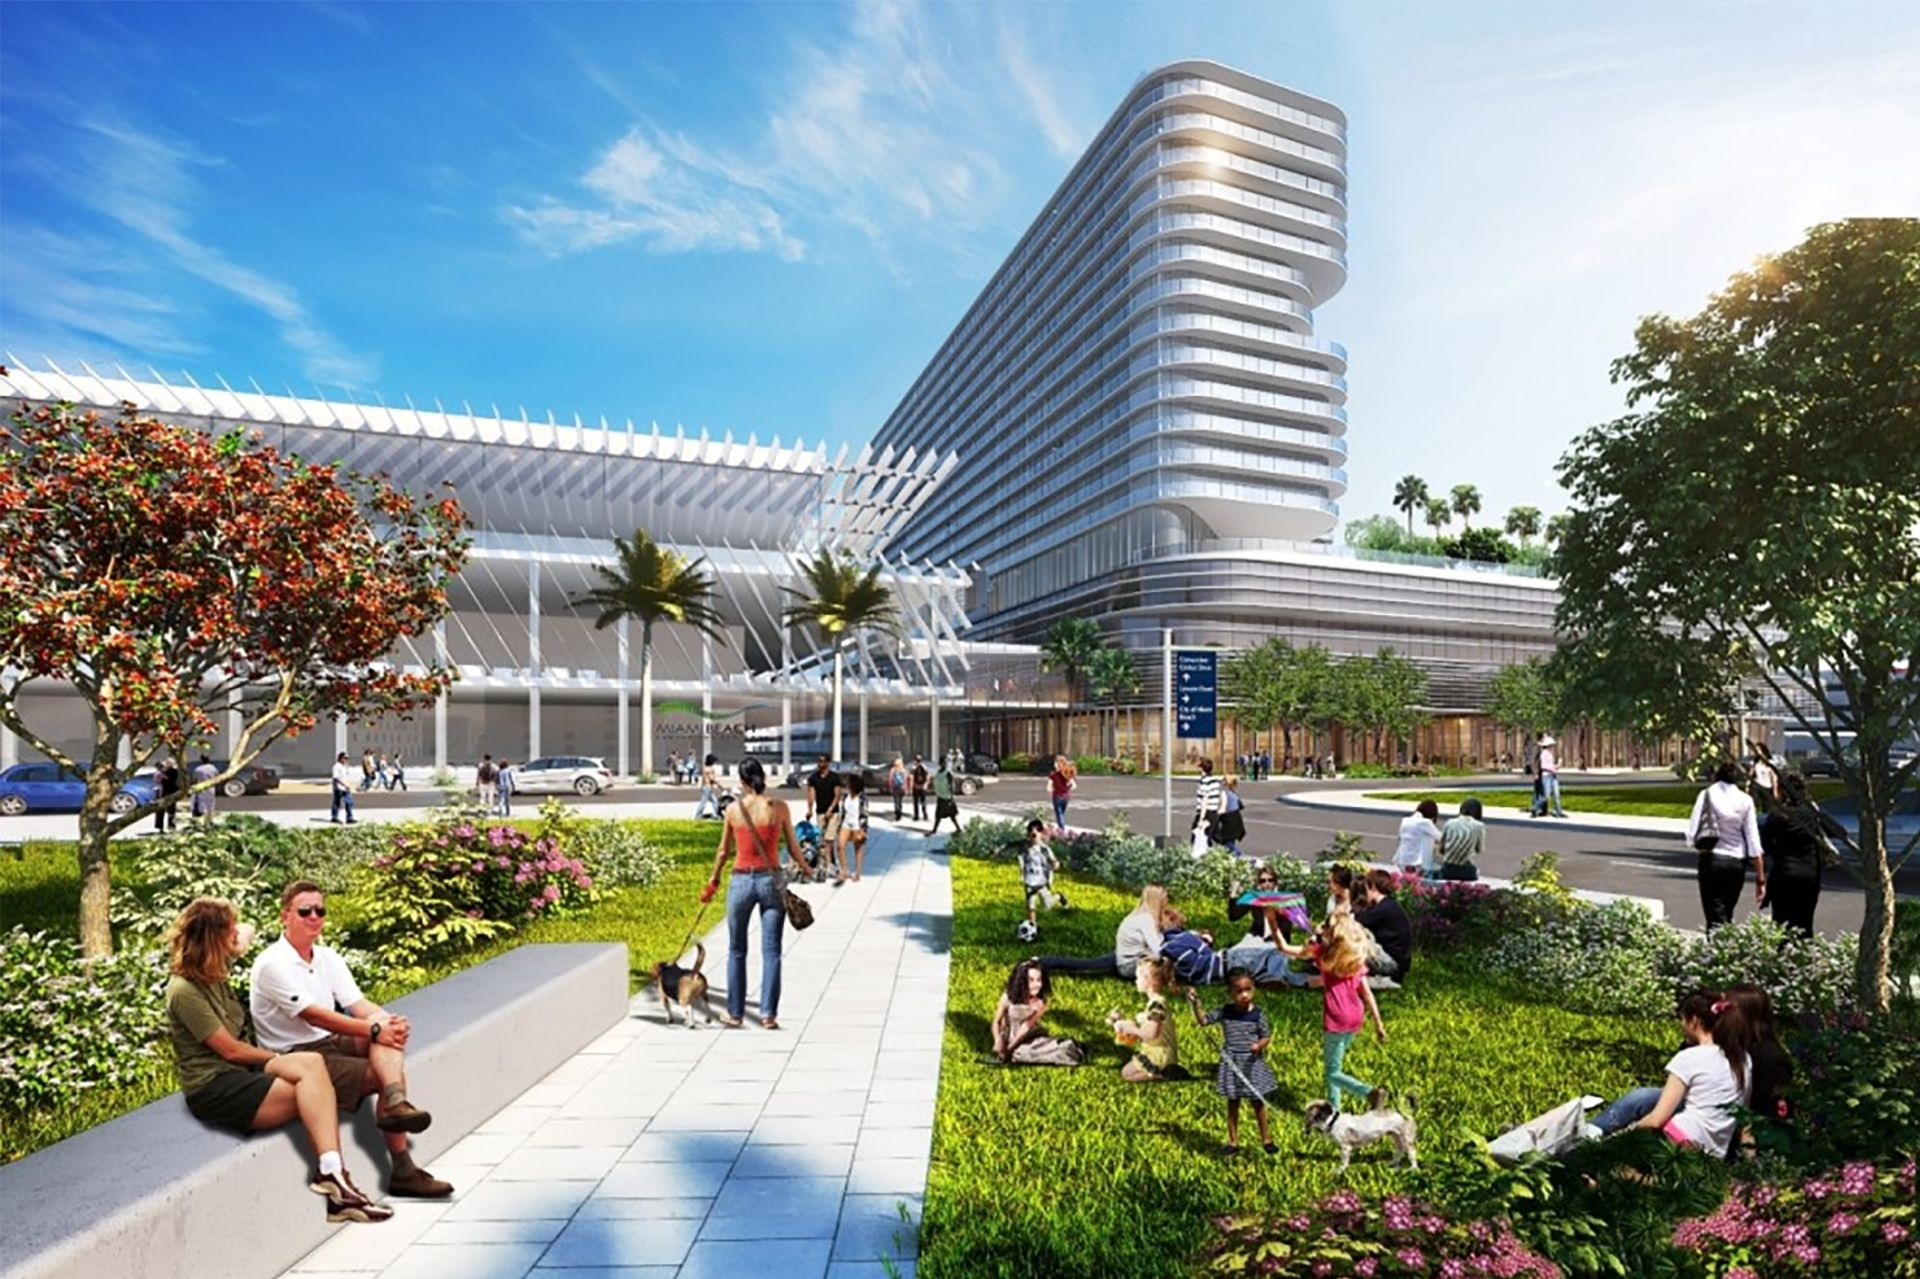 Hotel Brand Selected for Florida Convention Center Project